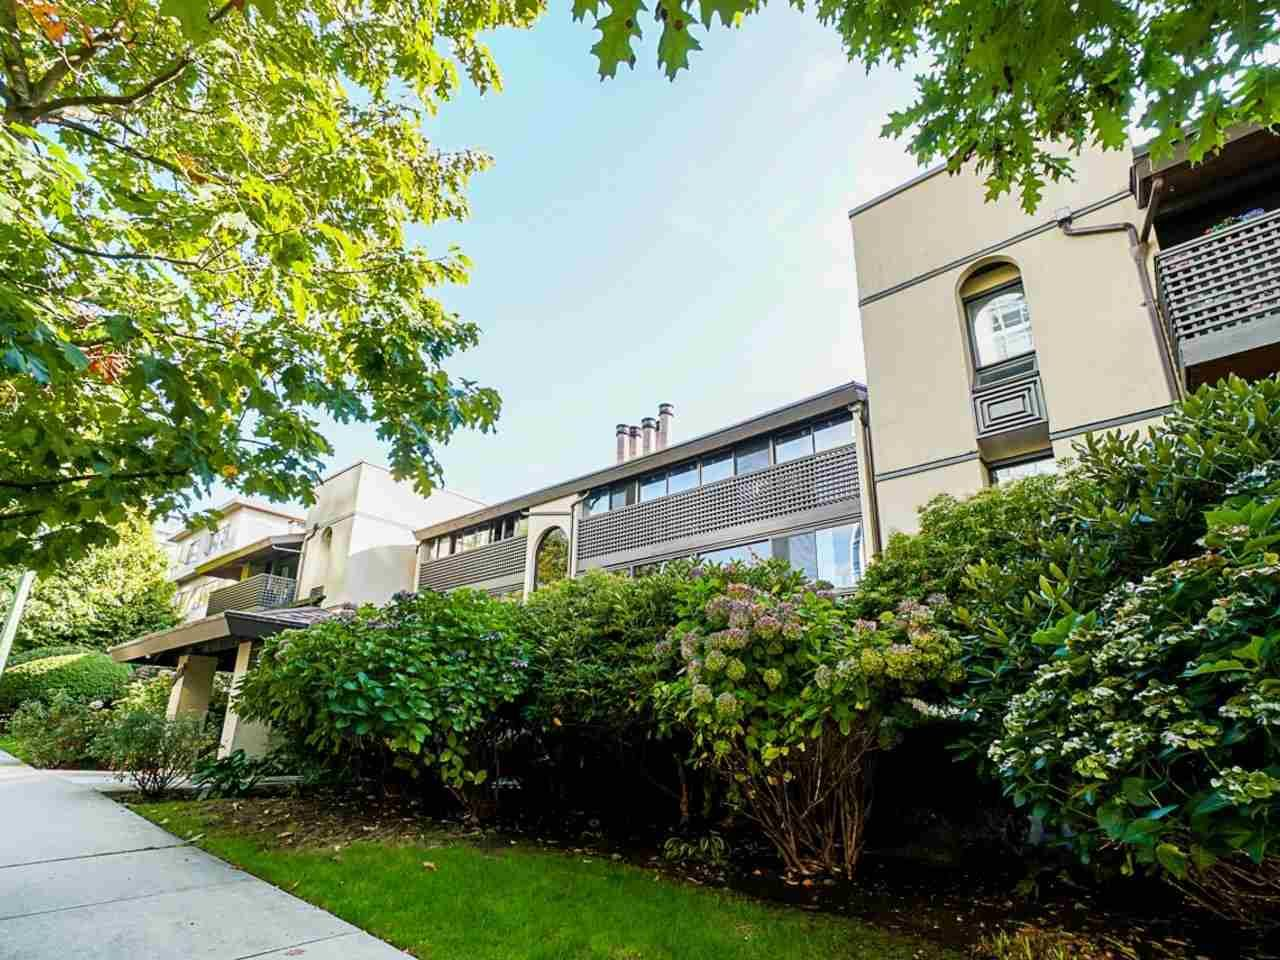 """Main Photo: 302 141 W 13TH Street in North Vancouver: Central Lonsdale Condo for sale in """"Tramore House"""" : MLS®# R2507057"""